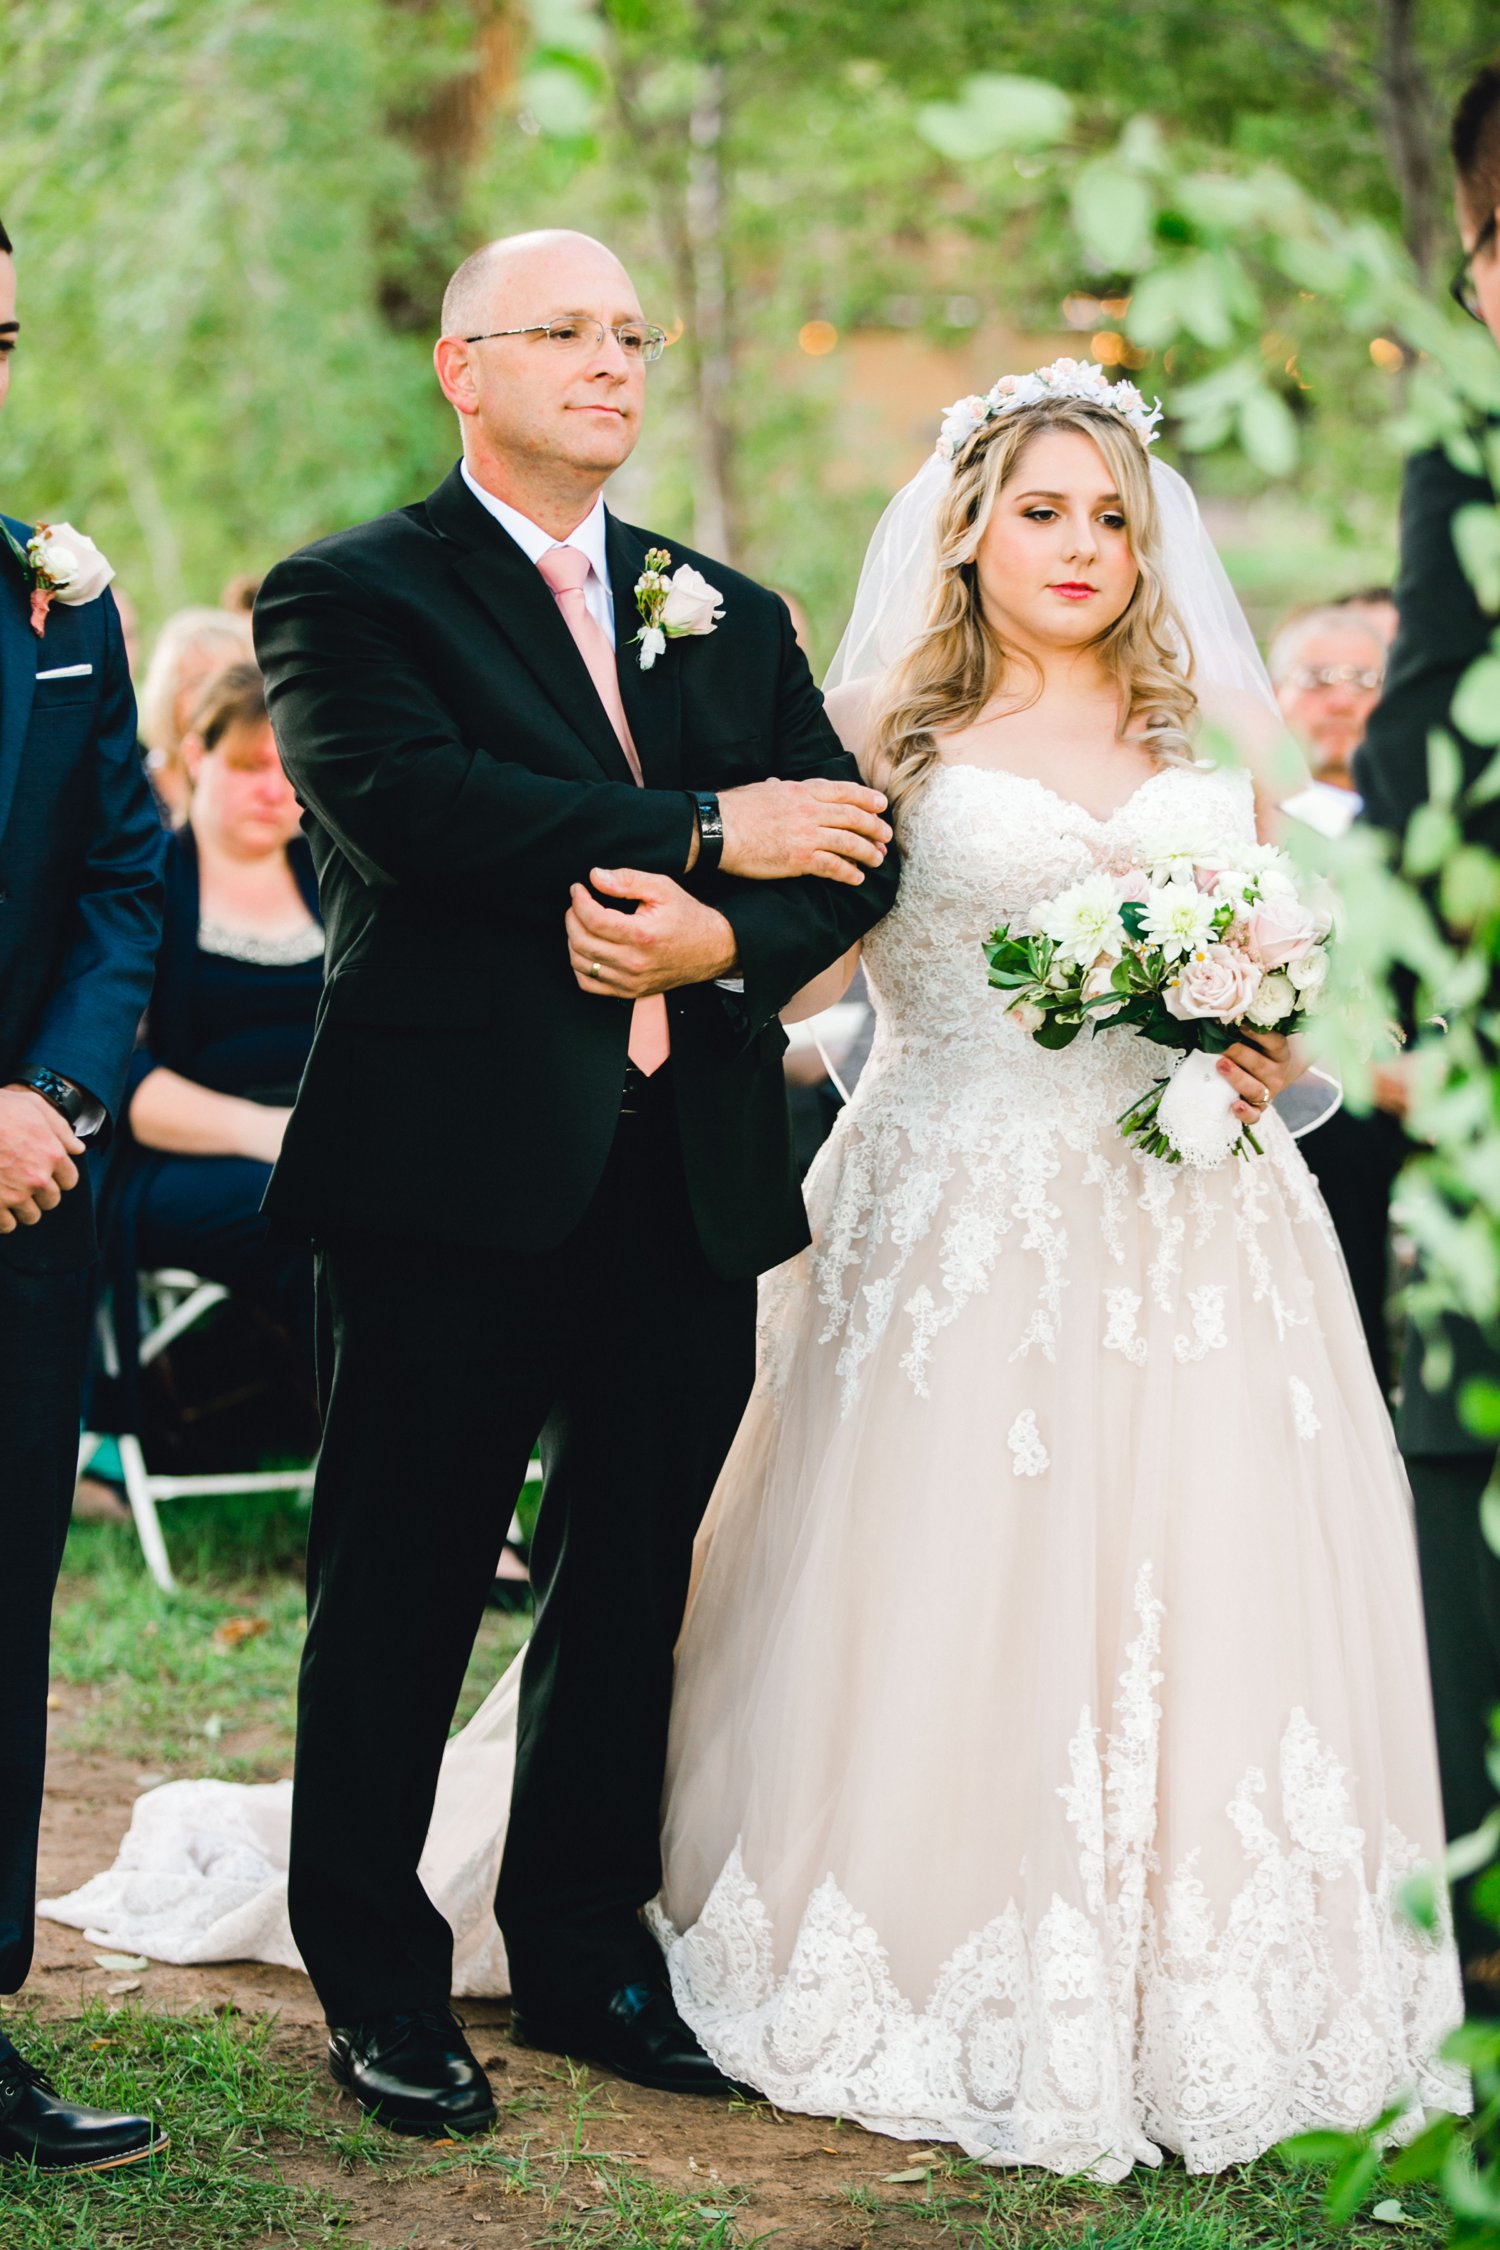 SARAH_AND_GEOFFREY_SHARP_SPIRIT_RANCH_WEDDING_ALLEEJ_LUBBOCK_TX_0046.jpg